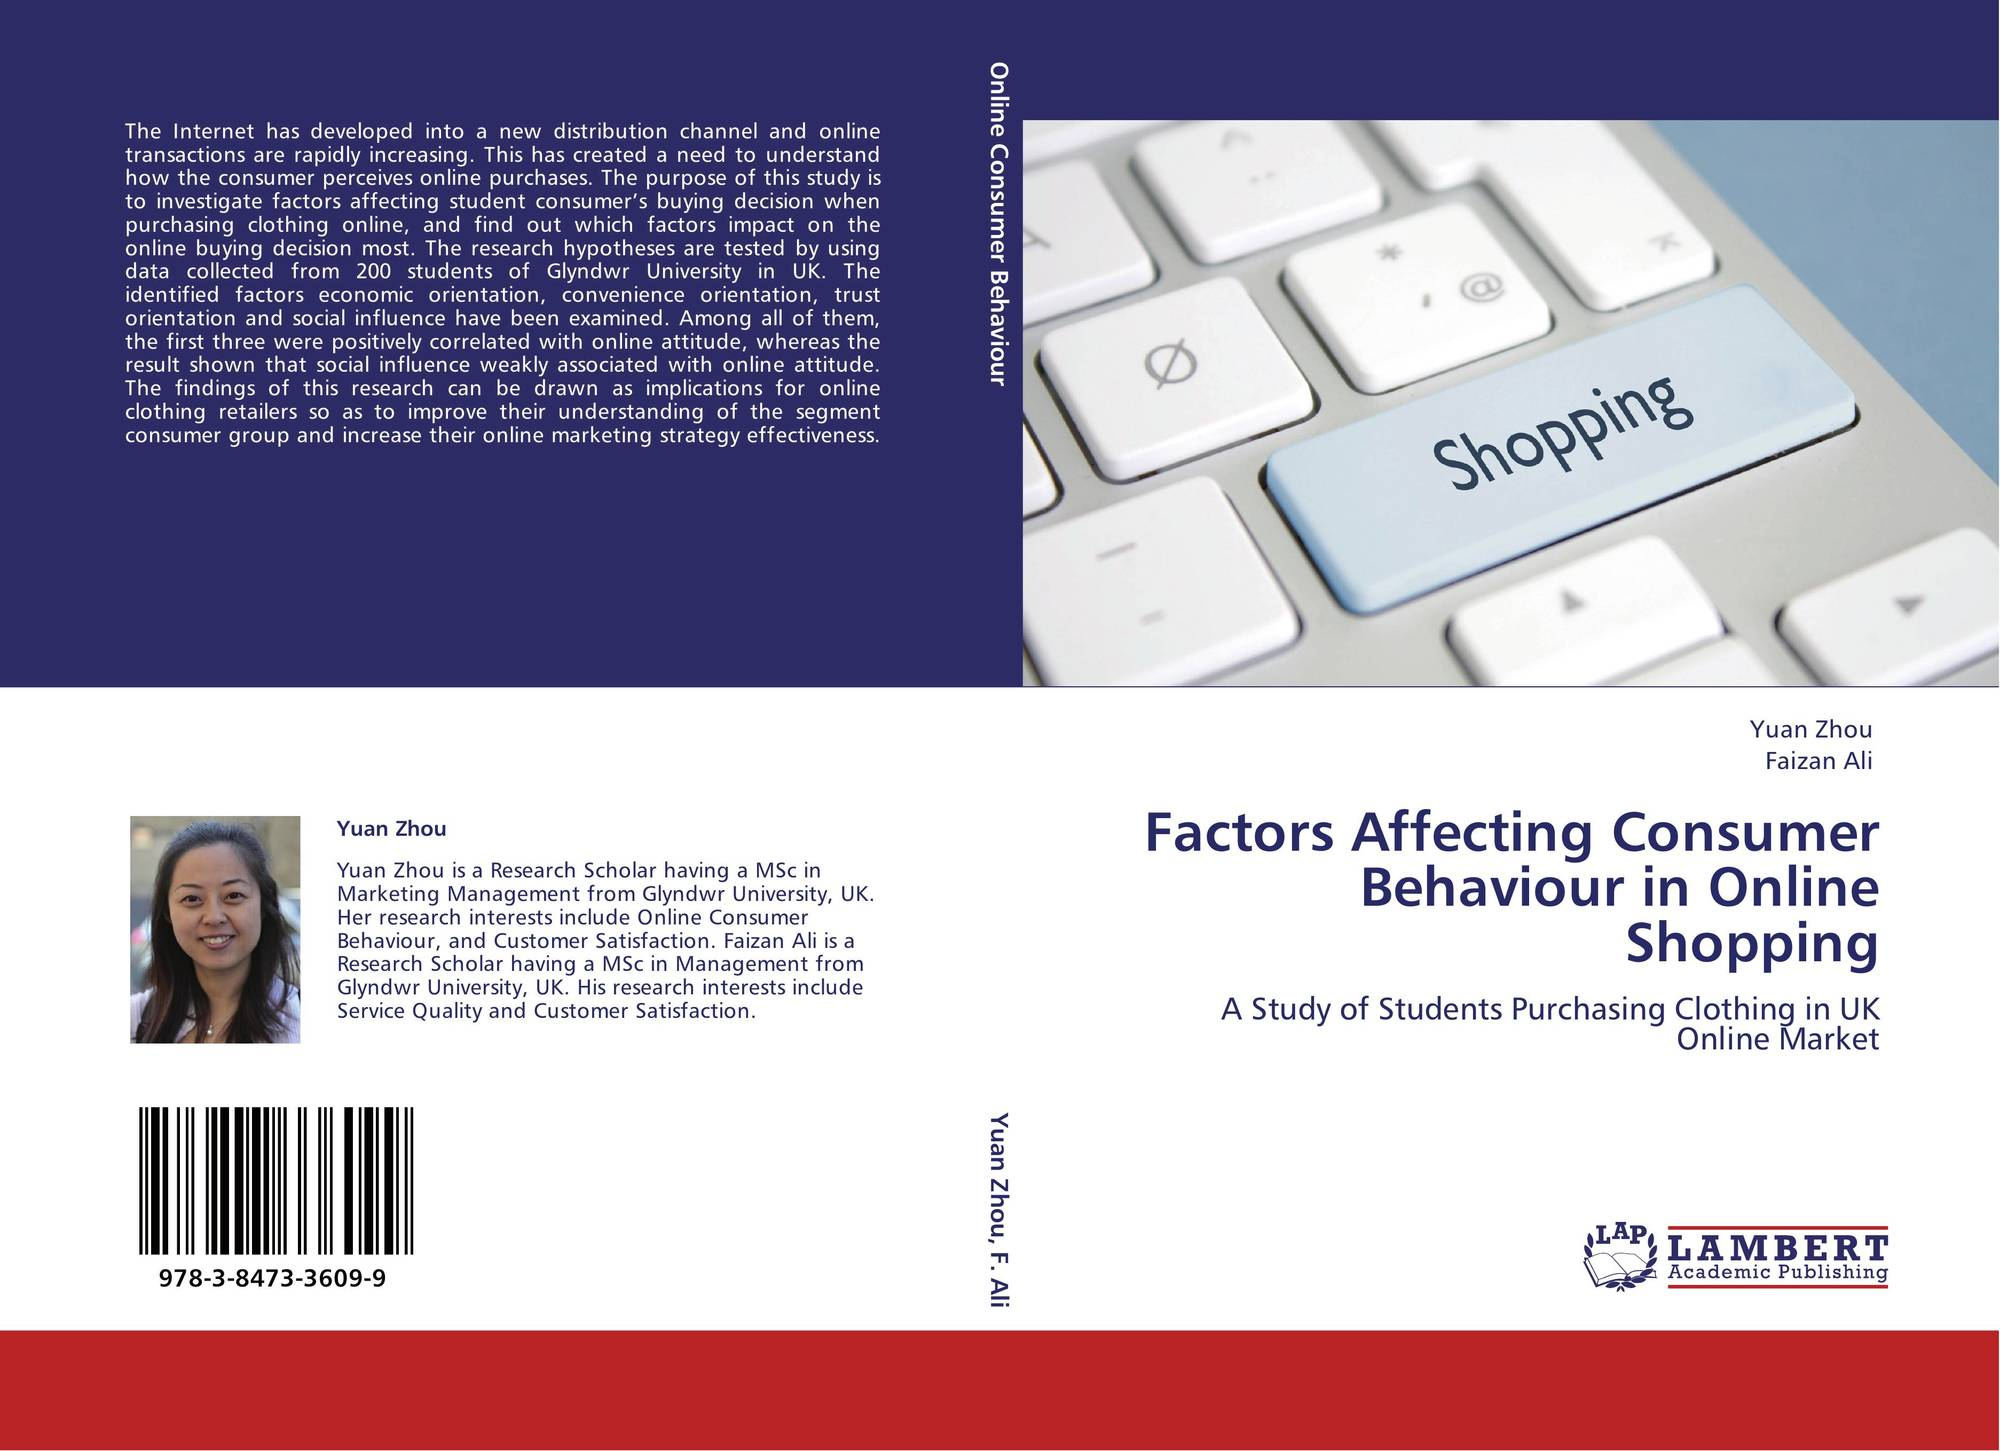 social factors correlating business Resilience is defined as the ability to respond adaptively and maintain a high quality of life even after adversity or trauma research conducted in western cultures has identified multiple factors that correlate with resilience for survivors of childhood trauma, including social support, the presence of a stable adult, internal locus of control, supportive spiritual beliefs and lack of self .